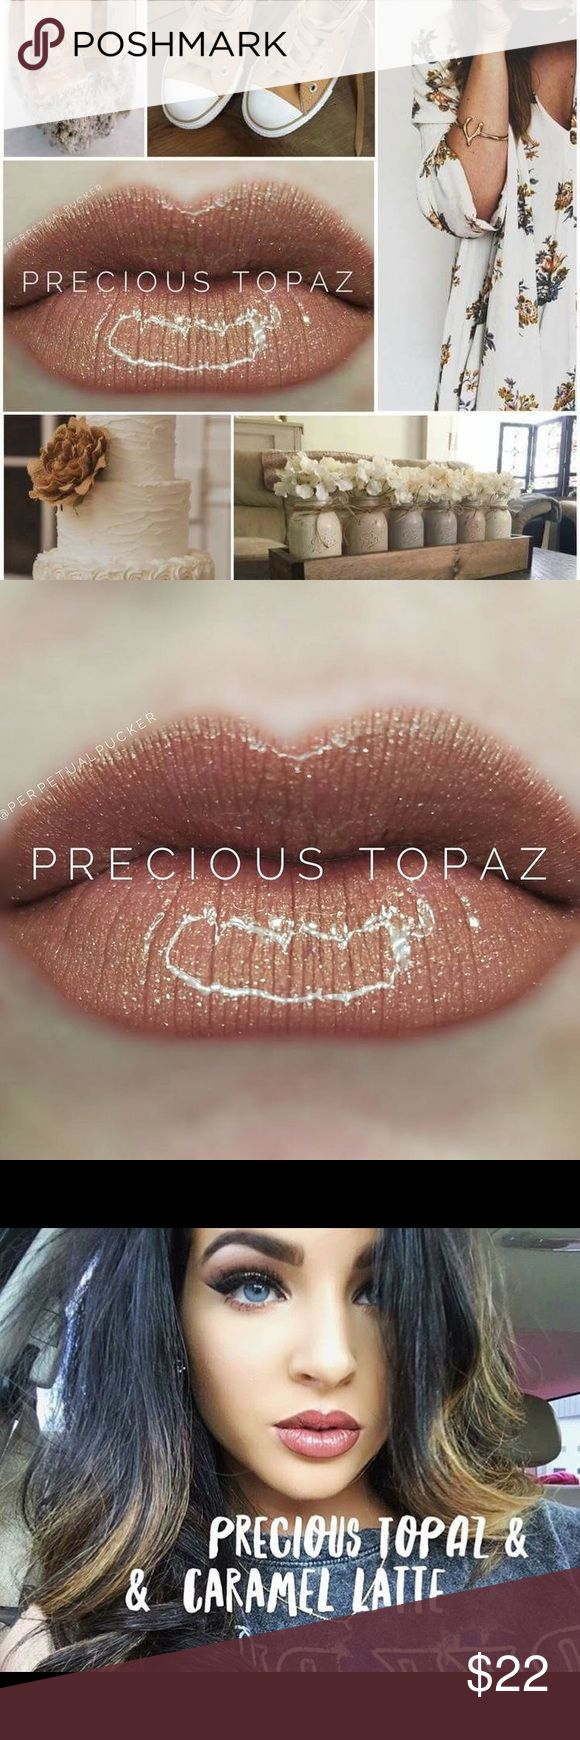 Precious Topaz LipSense 4-18 Hour Wear  LipSense is the premier product of SeneGence and is unlike any conventional lipstick, stain or color. It is waterproof, does not kiss-off, smear-off, rub-off or budge-off. It last from 4 to 18 hours. It is vegan, lead free, wax free, GMO free and gluten free. If you have never worn LipSense you will also need LipSense gloss to seal the color. Independent distributor for SeneGence #459685 SeneGence Makeup Lipstick